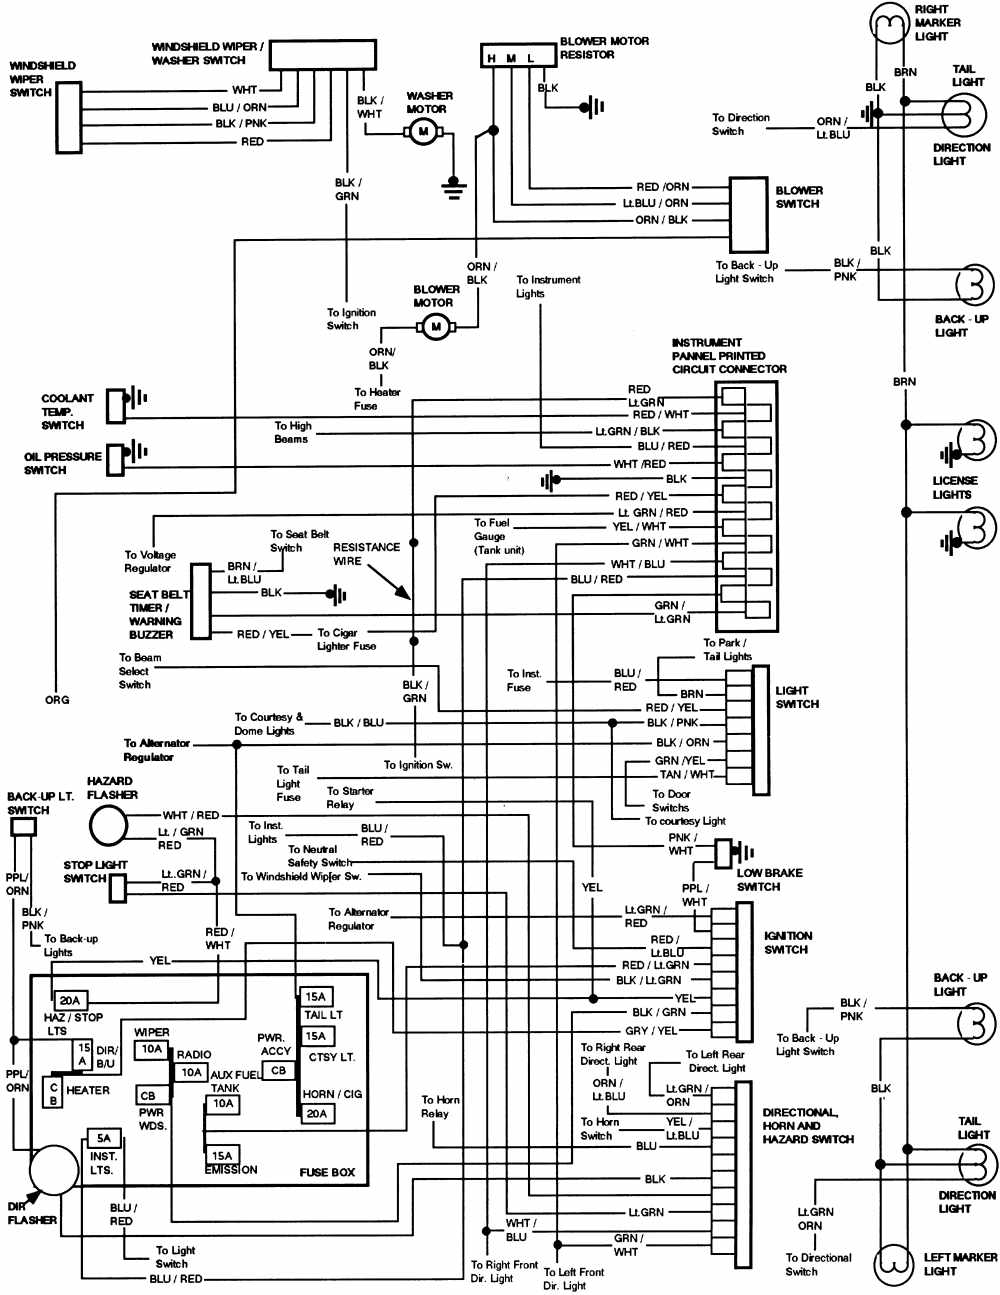 1999 ford f 800 wiring diagrams and service